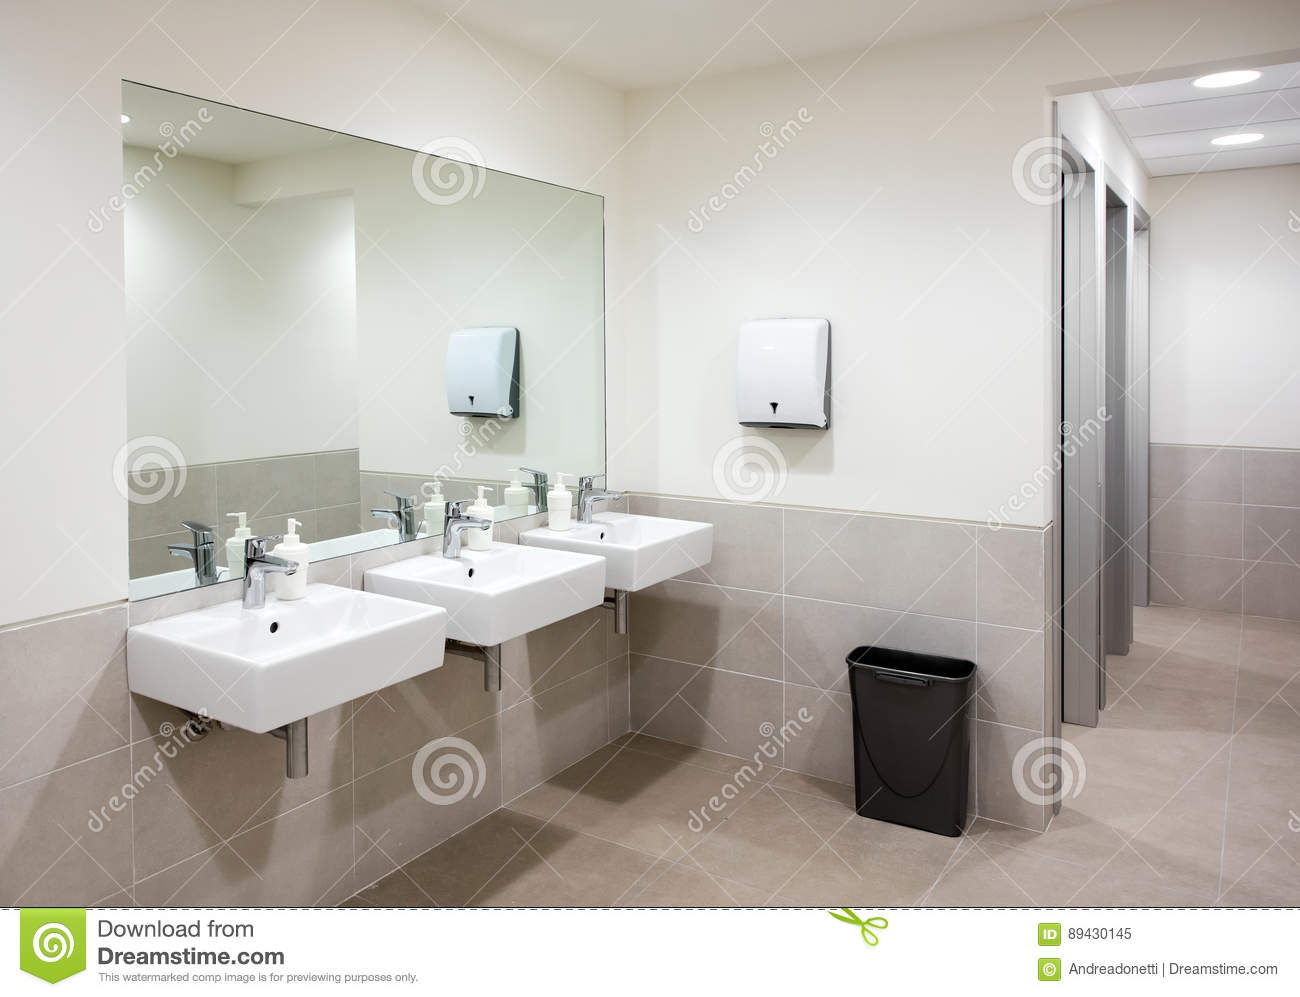 salle de bains ou toilettes publique avec des bassins de main image stock image du miroir. Black Bedroom Furniture Sets. Home Design Ideas